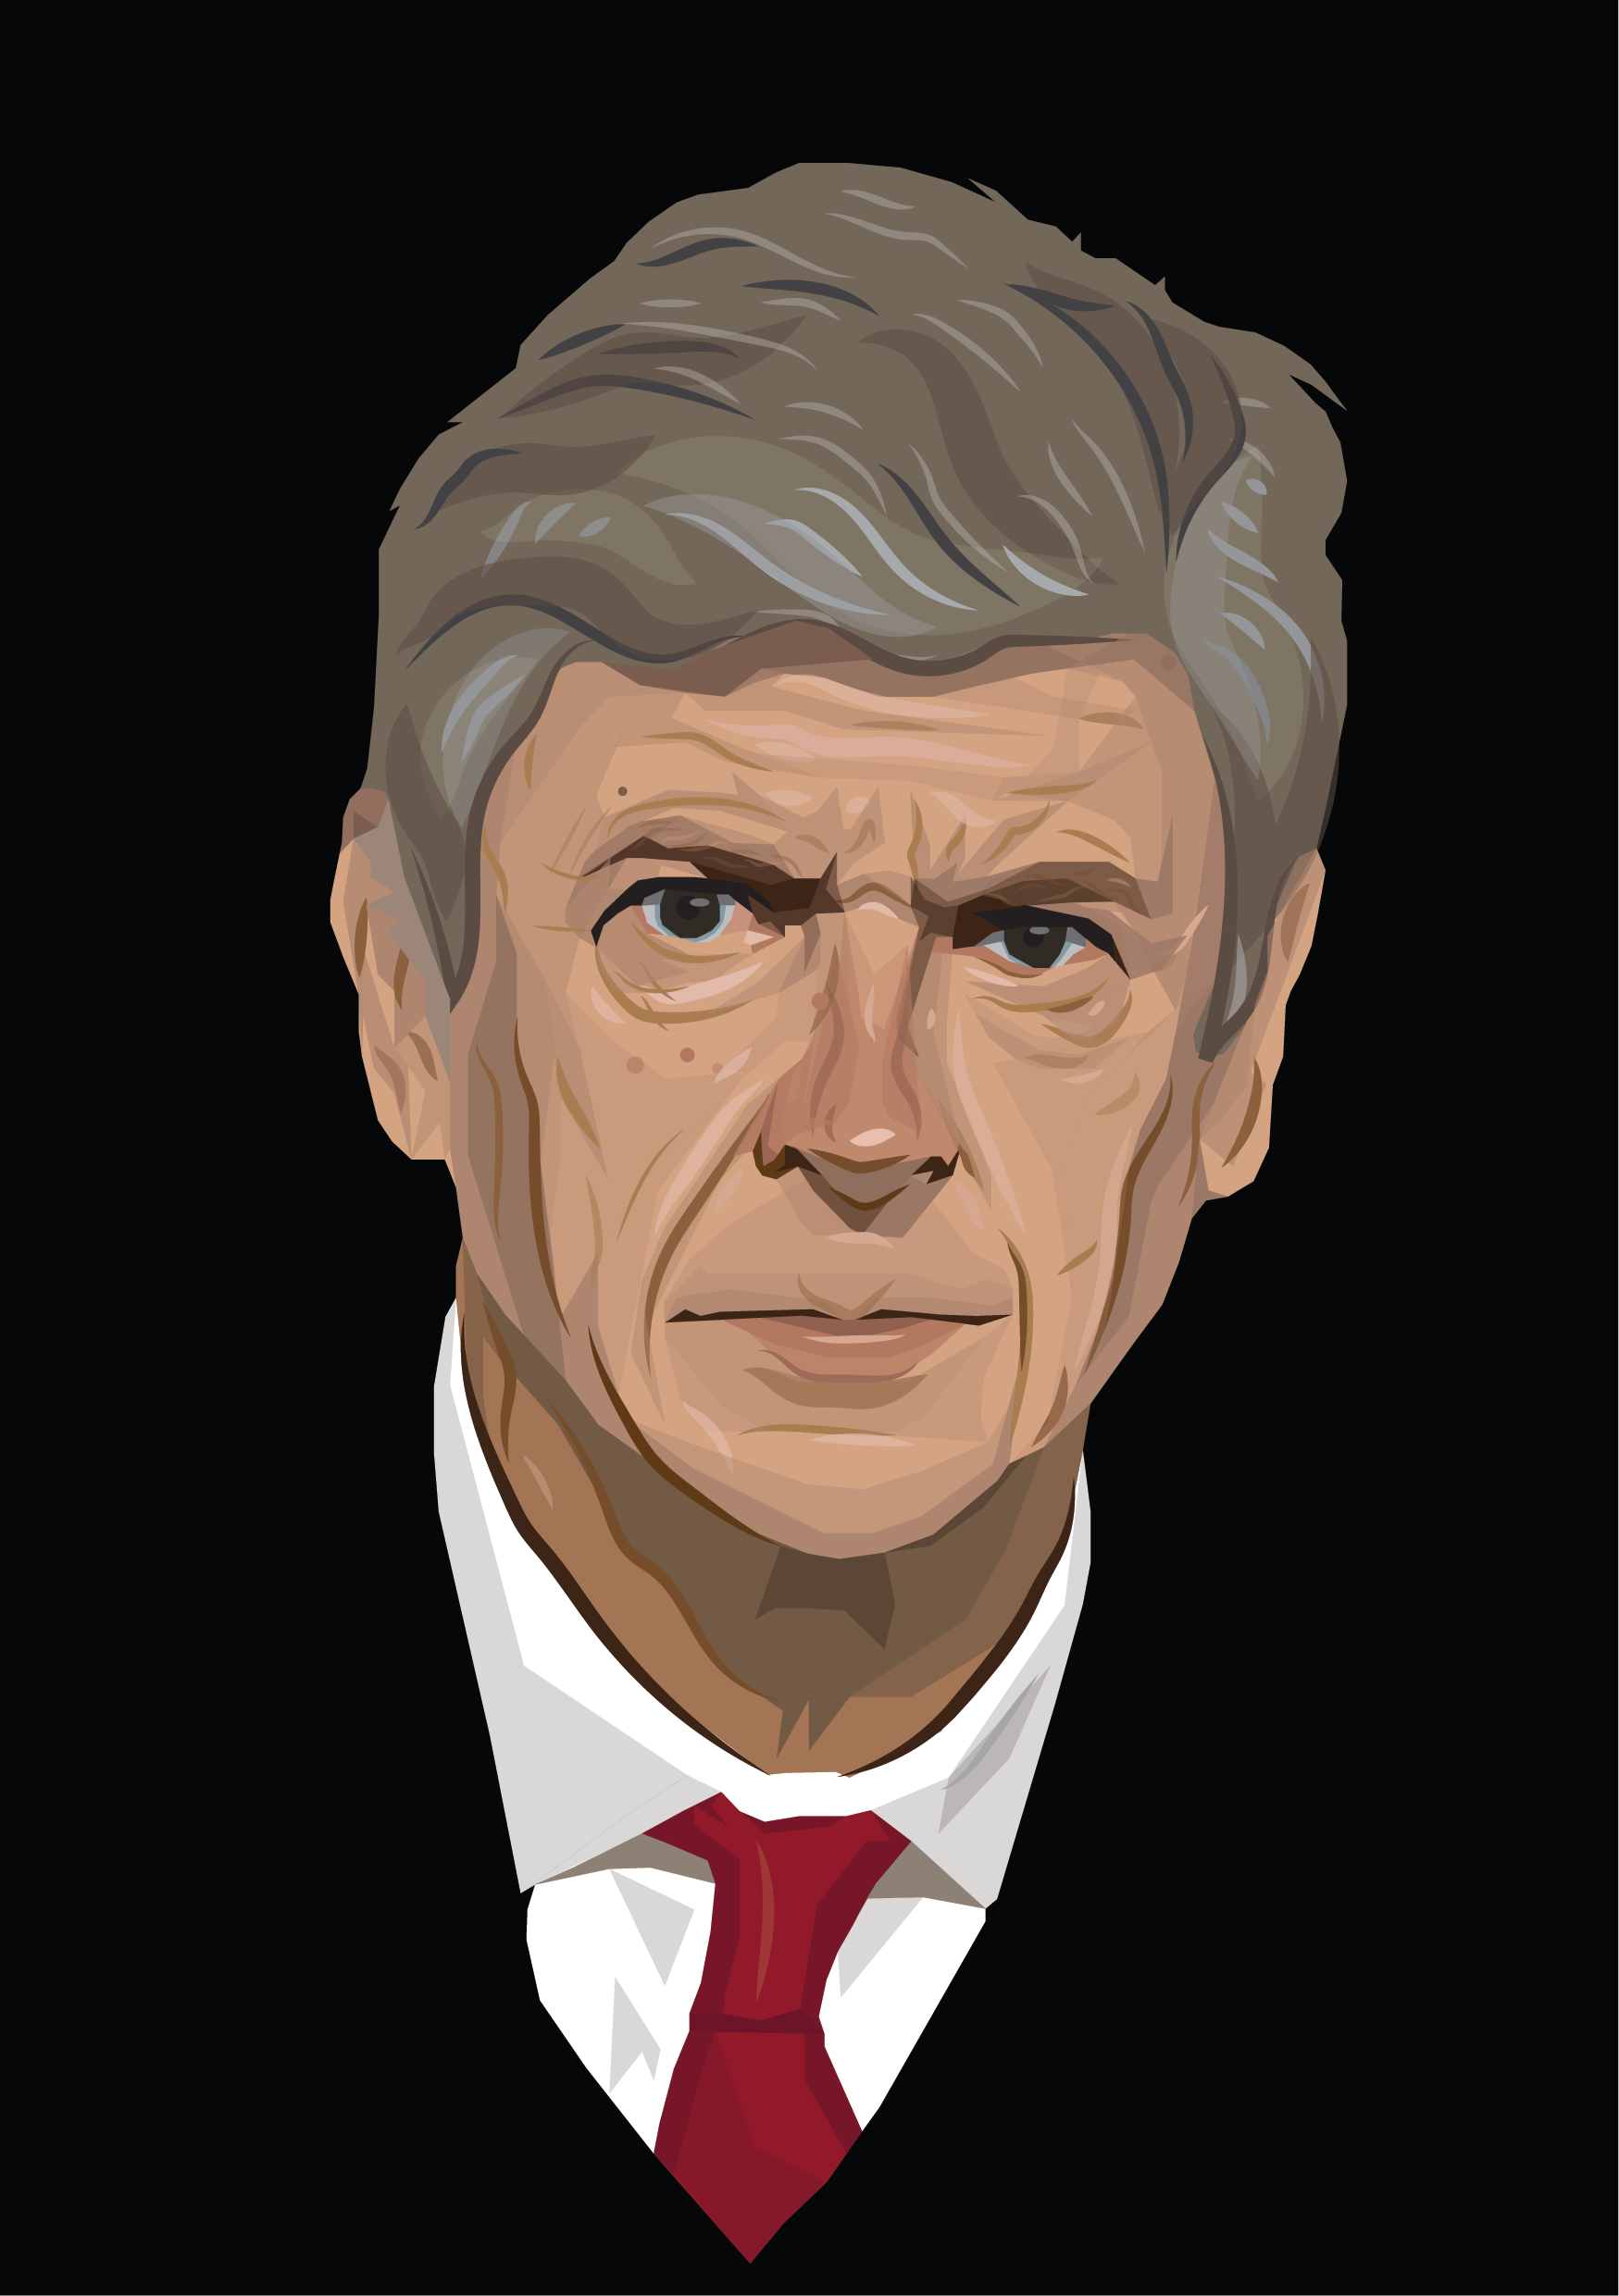 wenger1-01.png